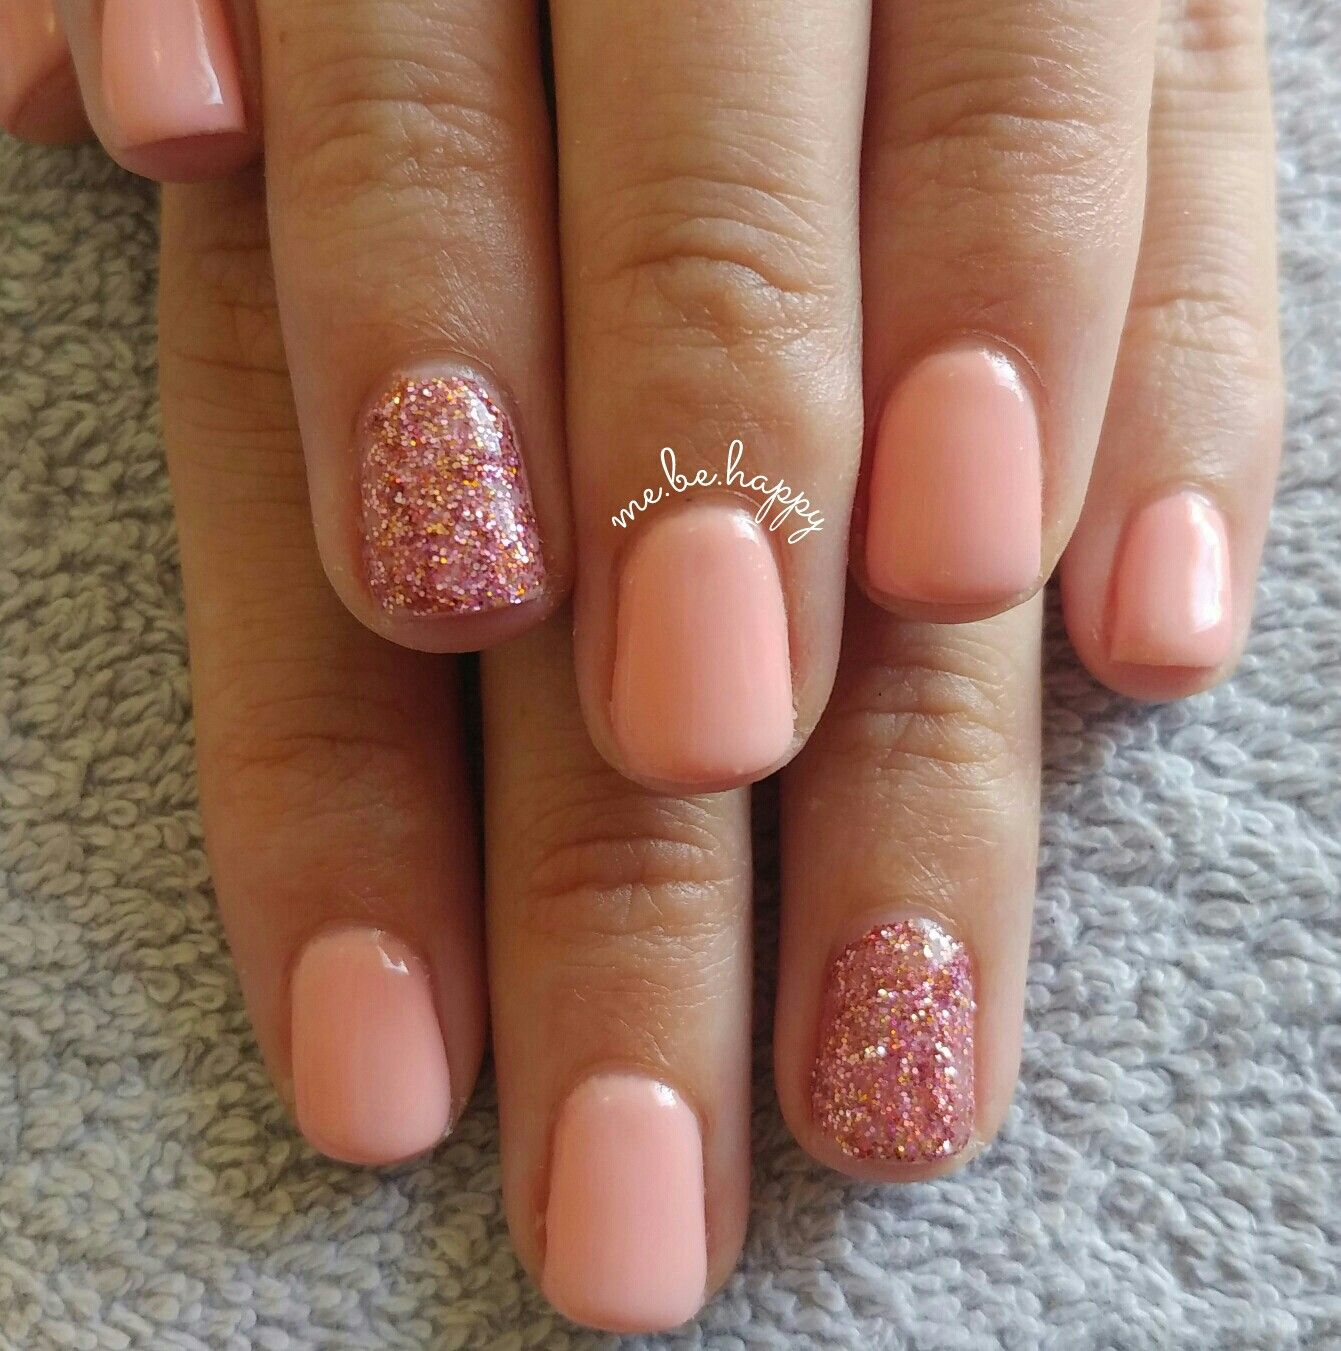 Crazy Salmon Logik gel overlay and self mixed rose gold glitter ...